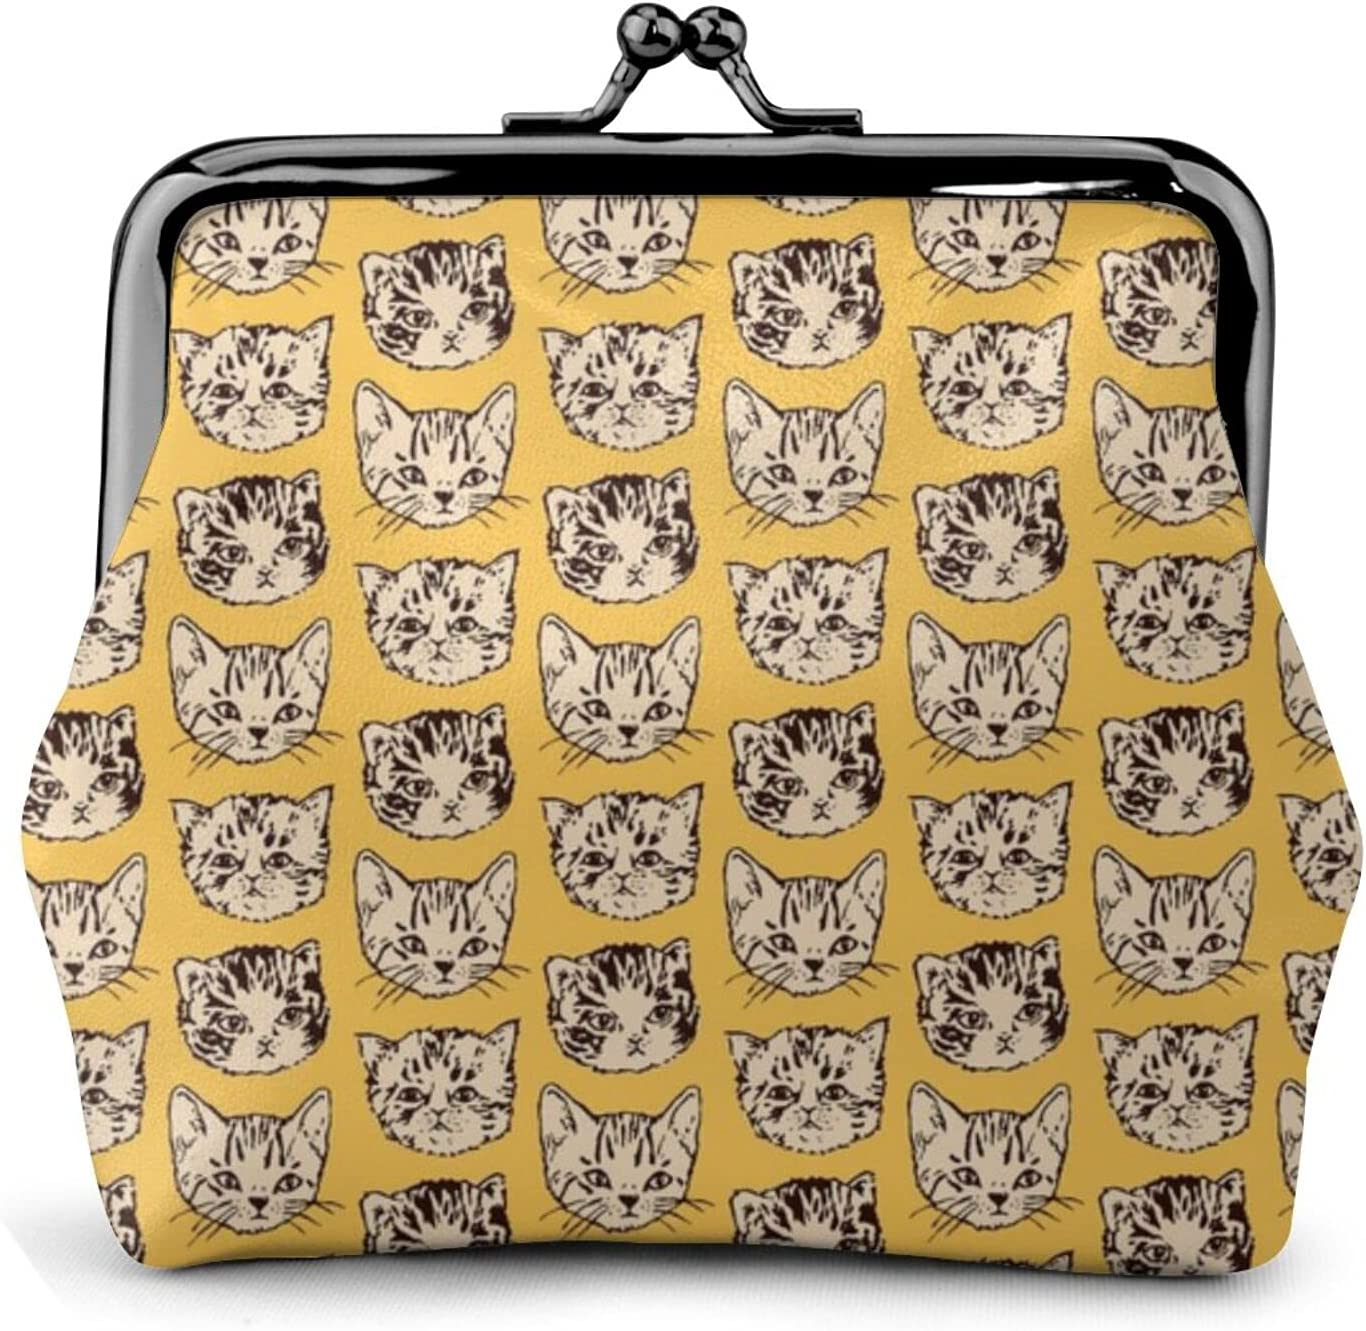 Cute Cats Orange 1843 Coin Purse Retro Money Pouch with Kiss-lock Buckle Small Wallet for Women and Girls